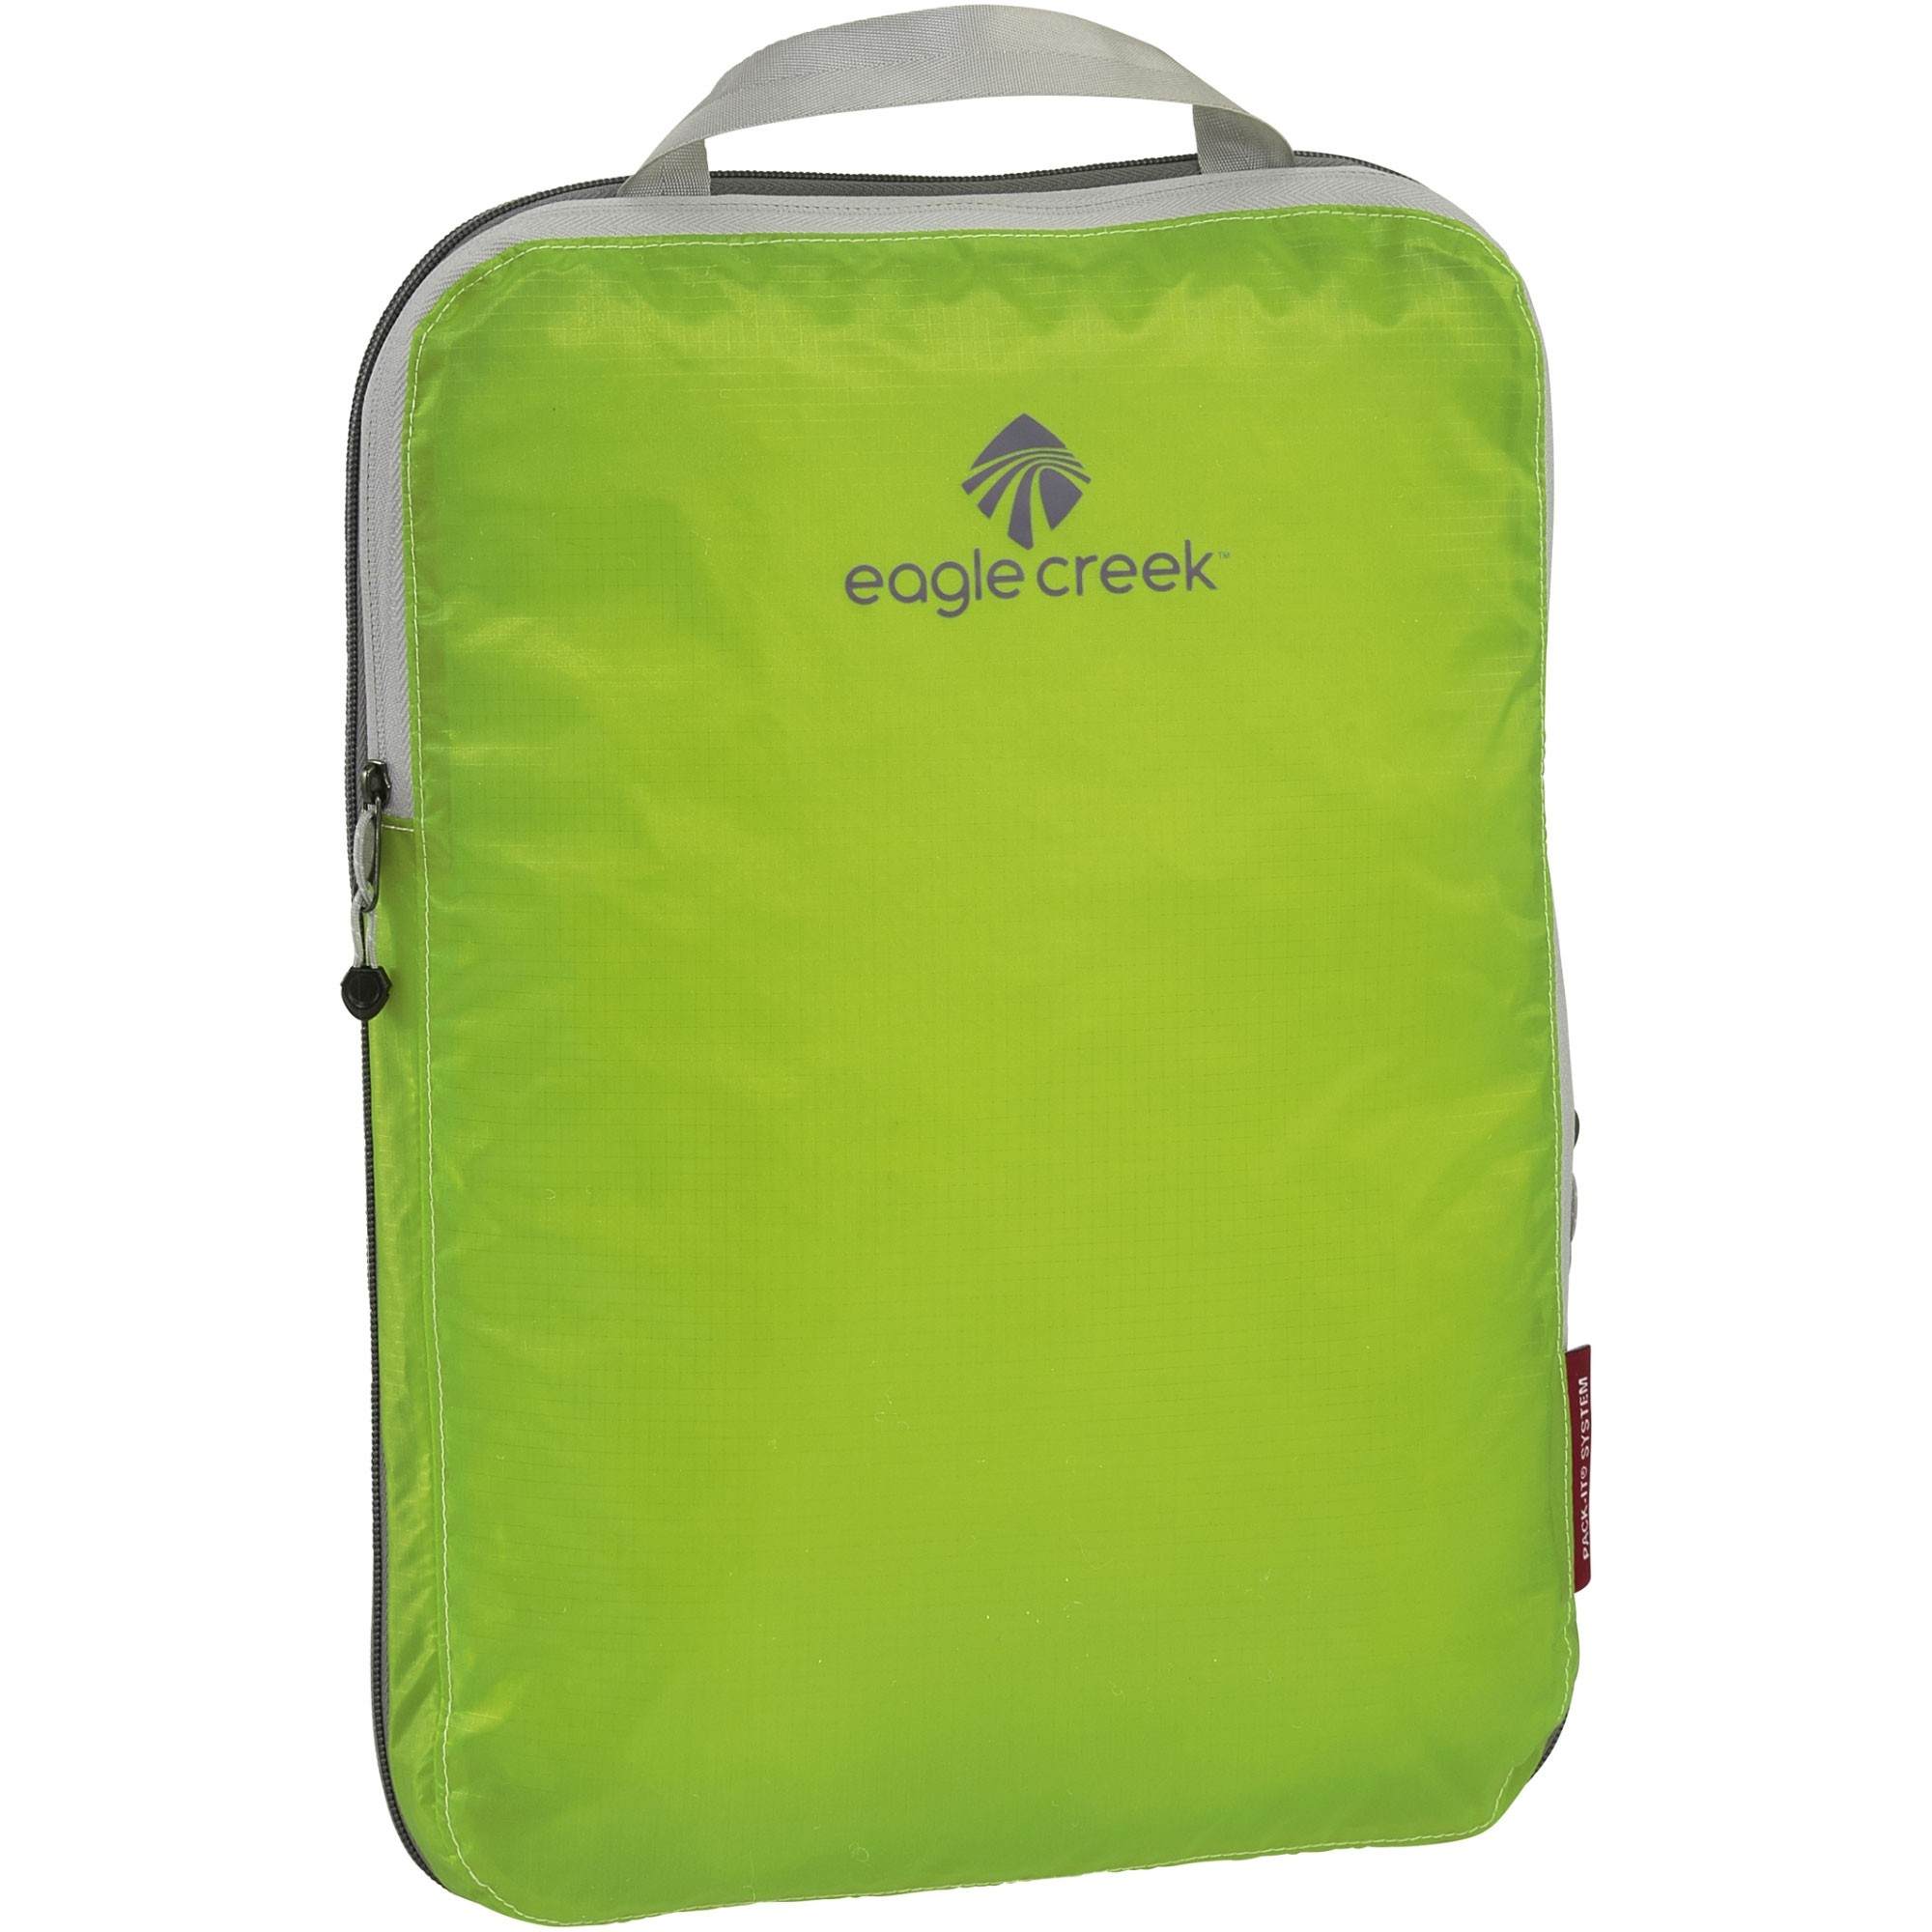 EAGLE CREEK - Pack-It Specter Compression Cube - Strobe Green